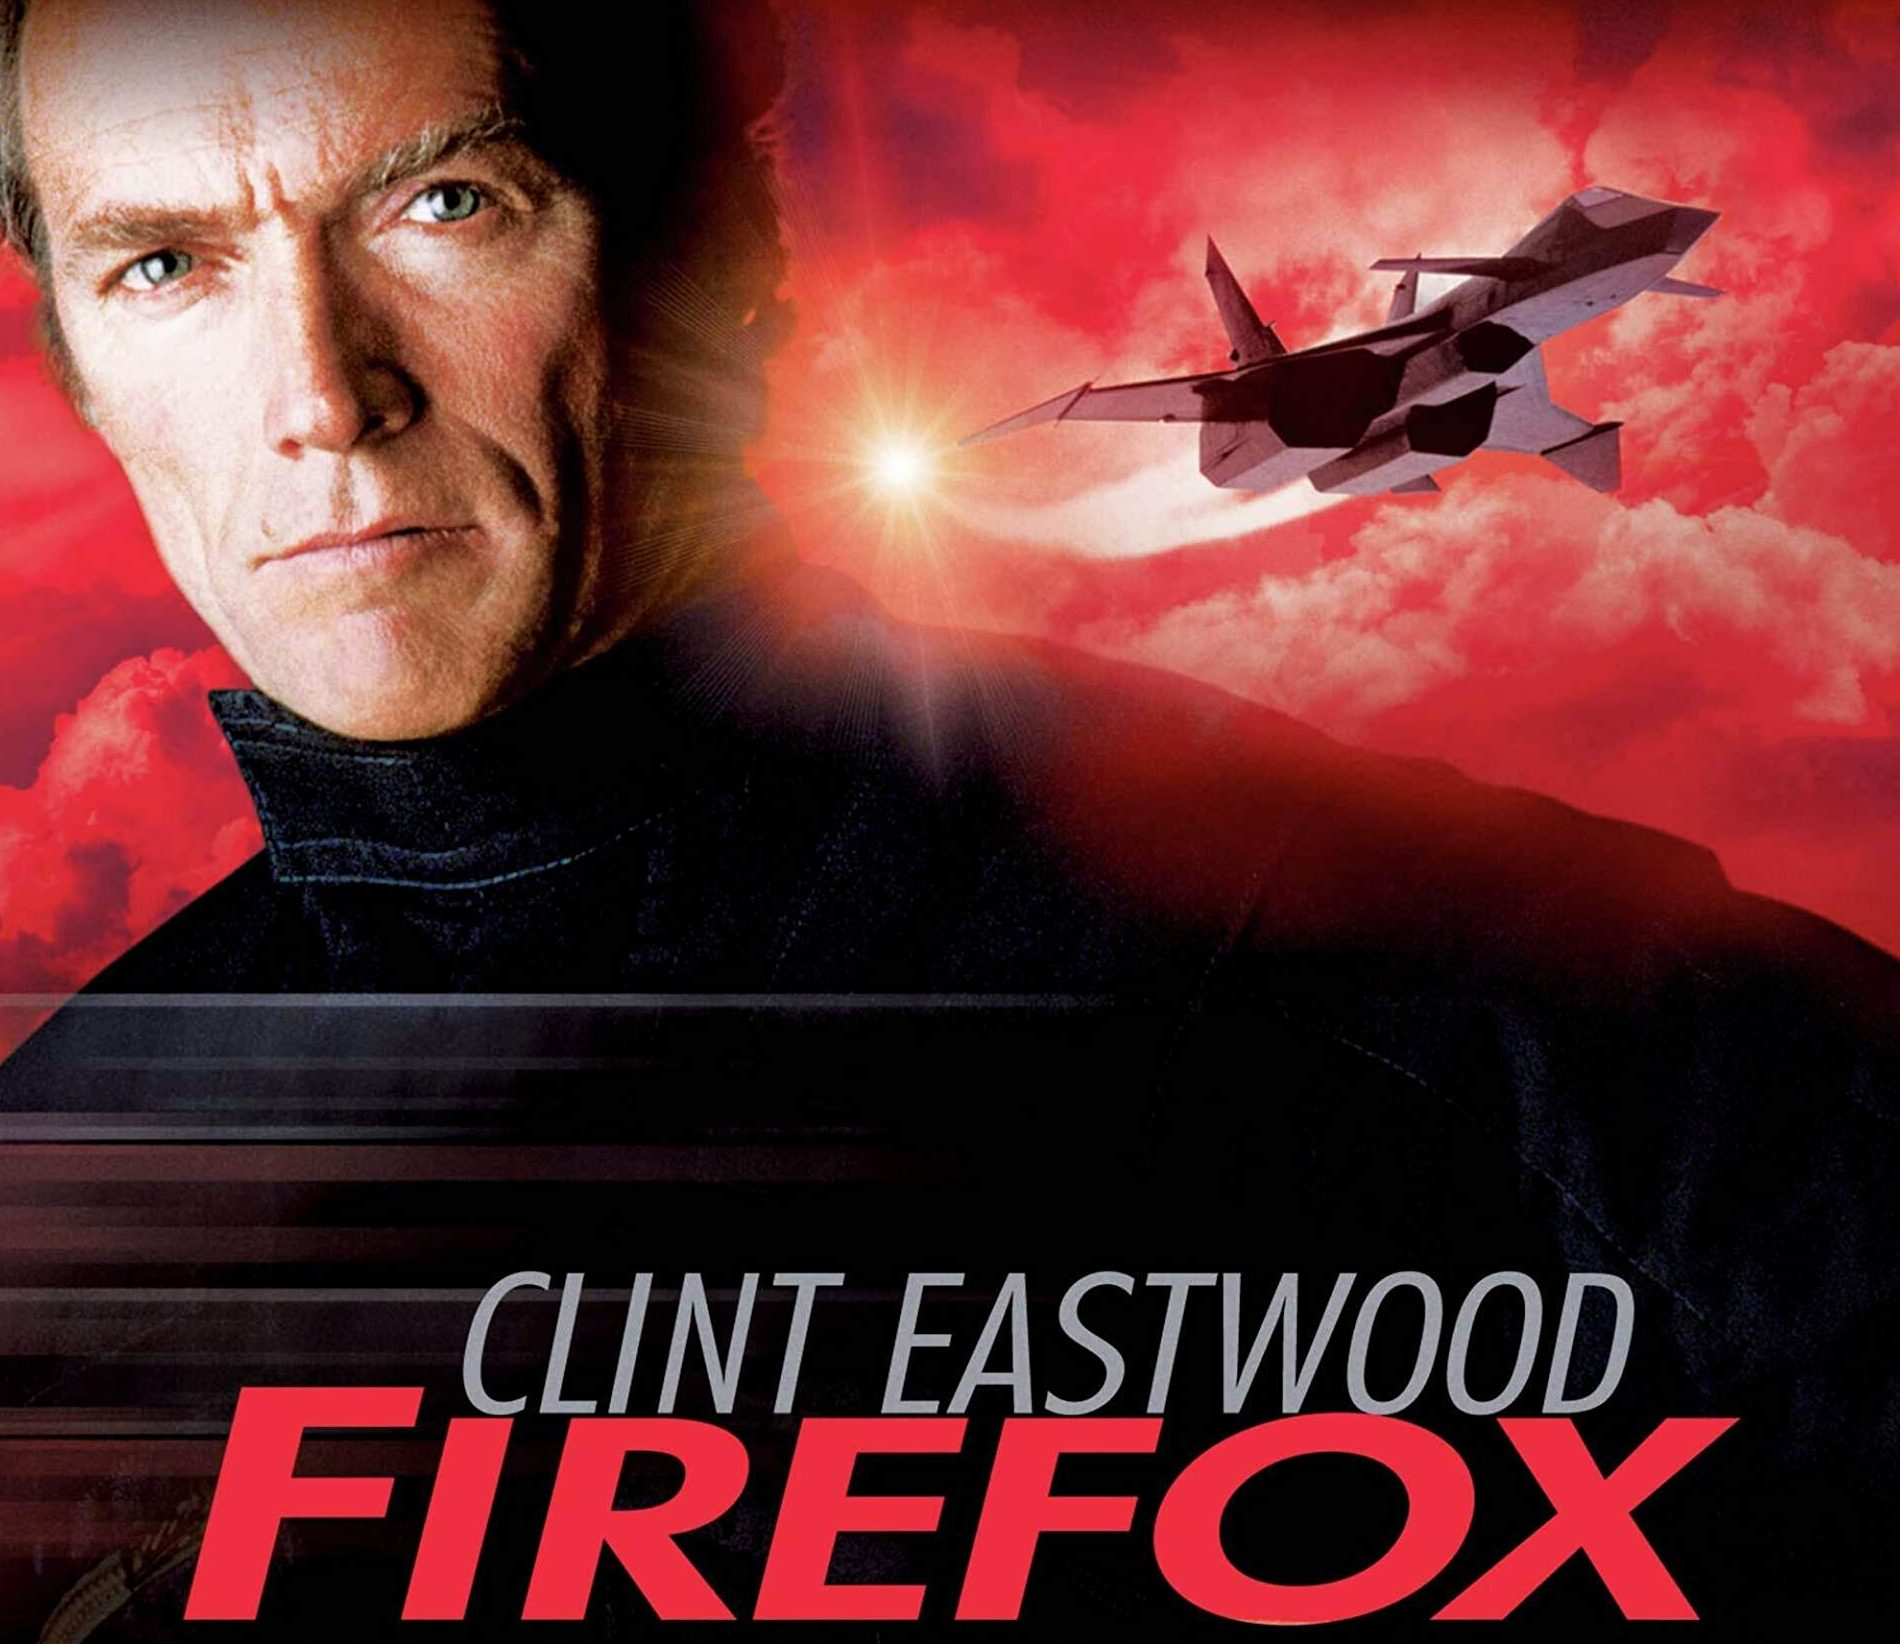 81a8K8VjwL. RI e1624961006457 20 Things You Probably Didn't Know About Clint Eastwood's 1982 Film Firefox